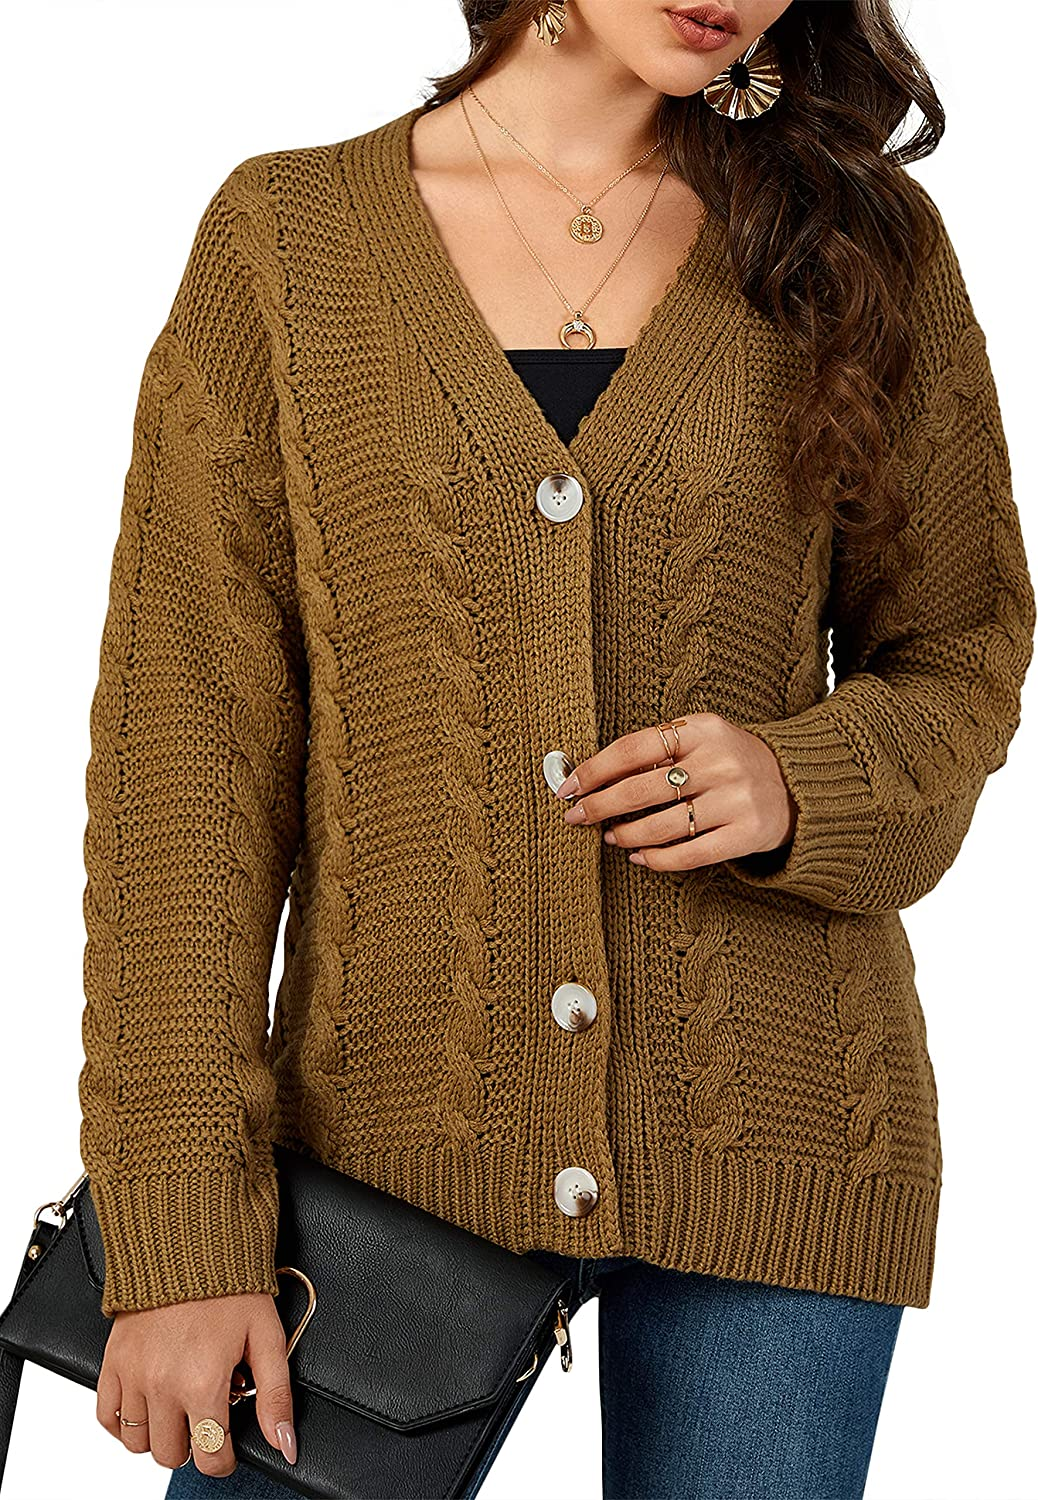 Nulibenna Women Cable Knit Button Down Cardigan Chunky V Neck Open Front Sweater Knitwear Coat